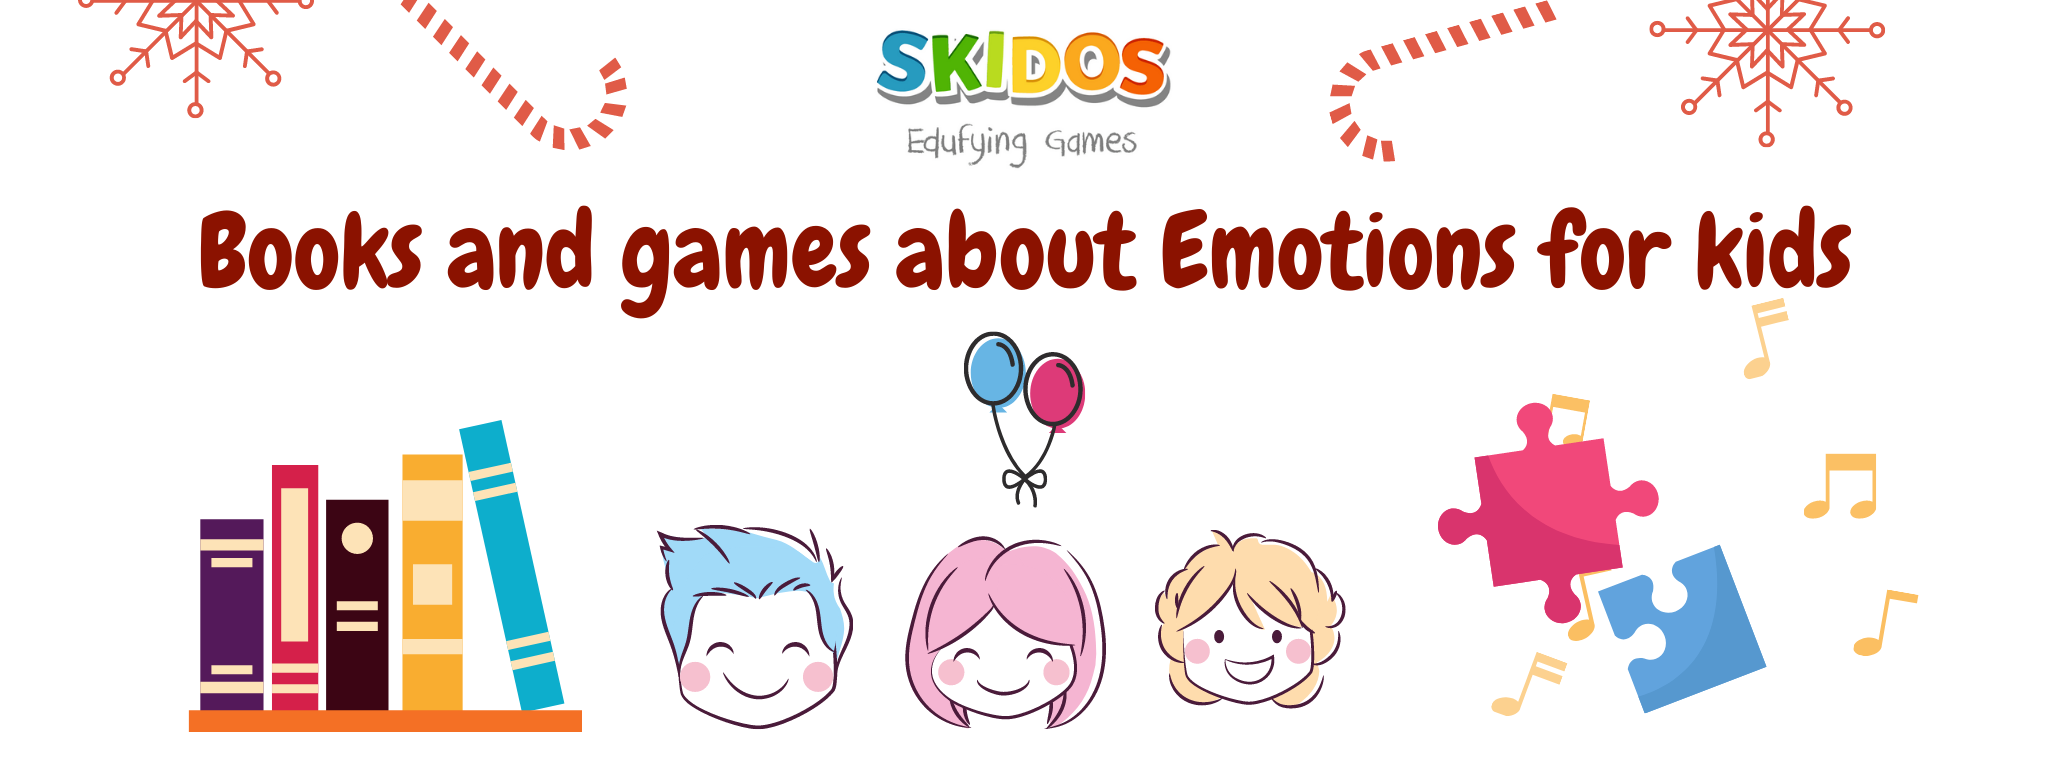 Books and games about Emotions for kids